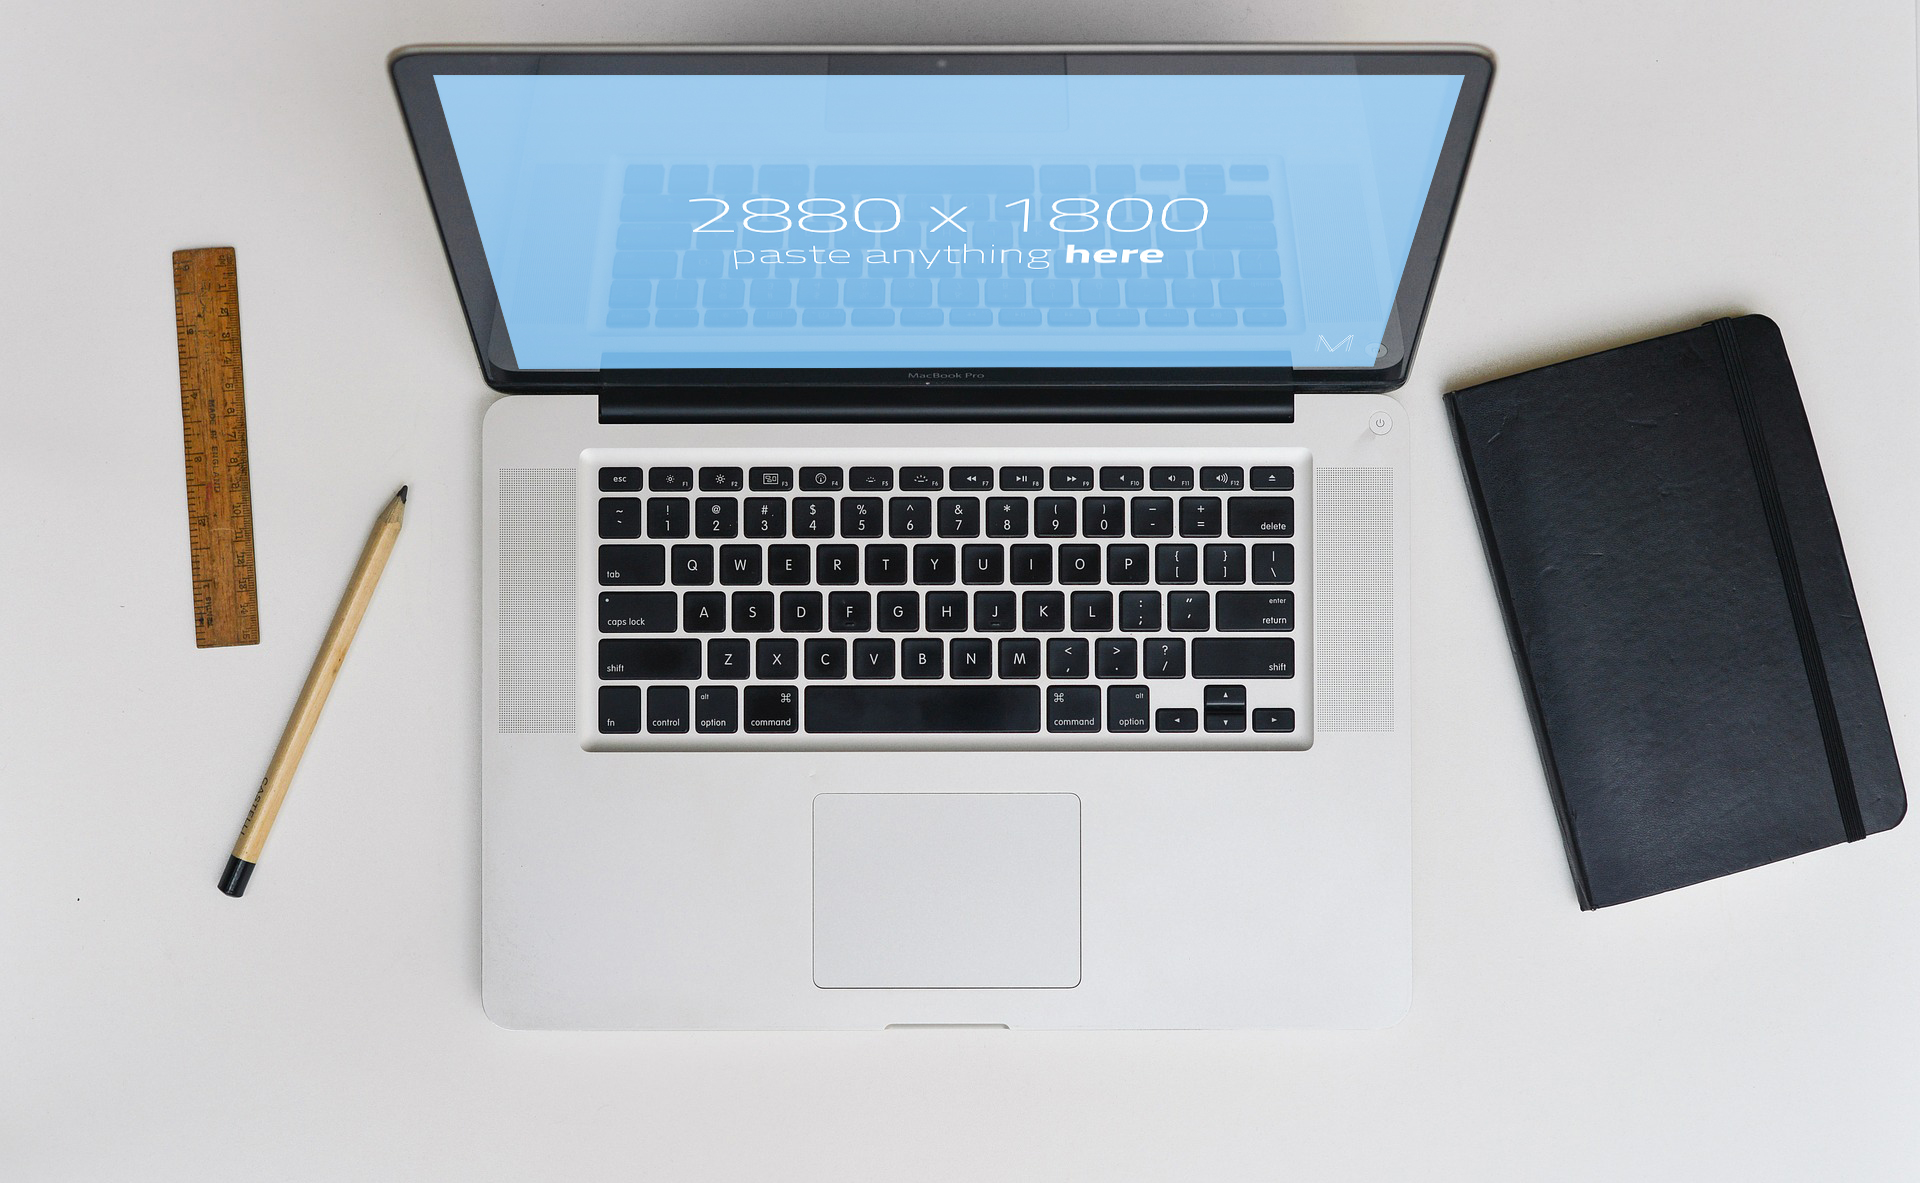 Macbook Pro table Top Mockup Free PSD